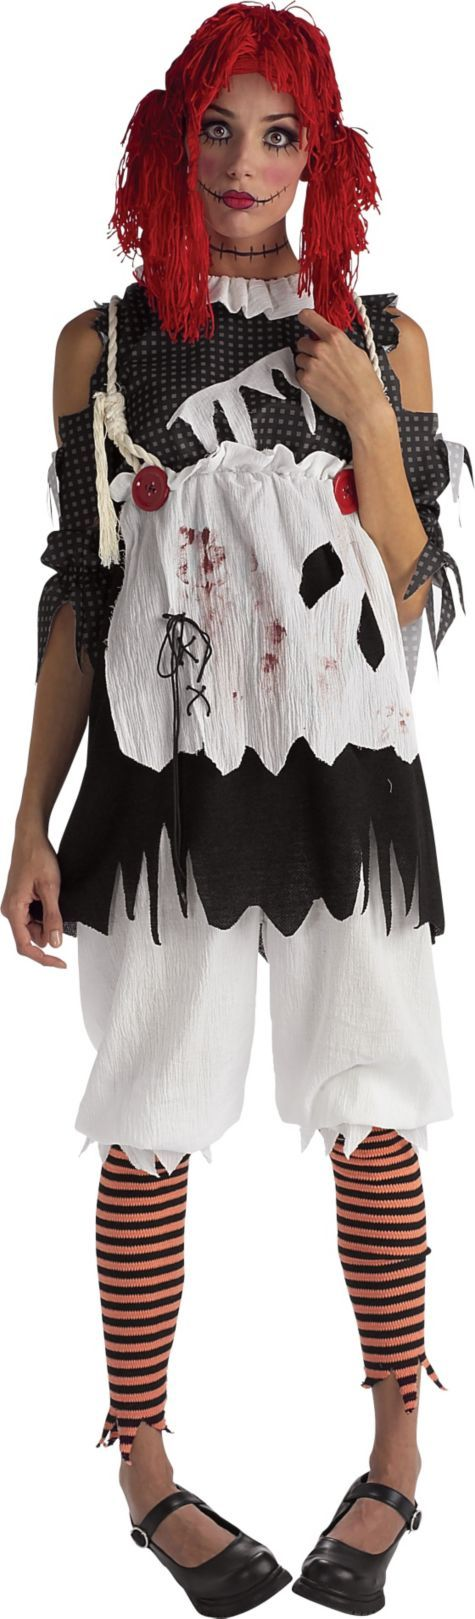 Scary Rag Doll Costume for Women - Party City